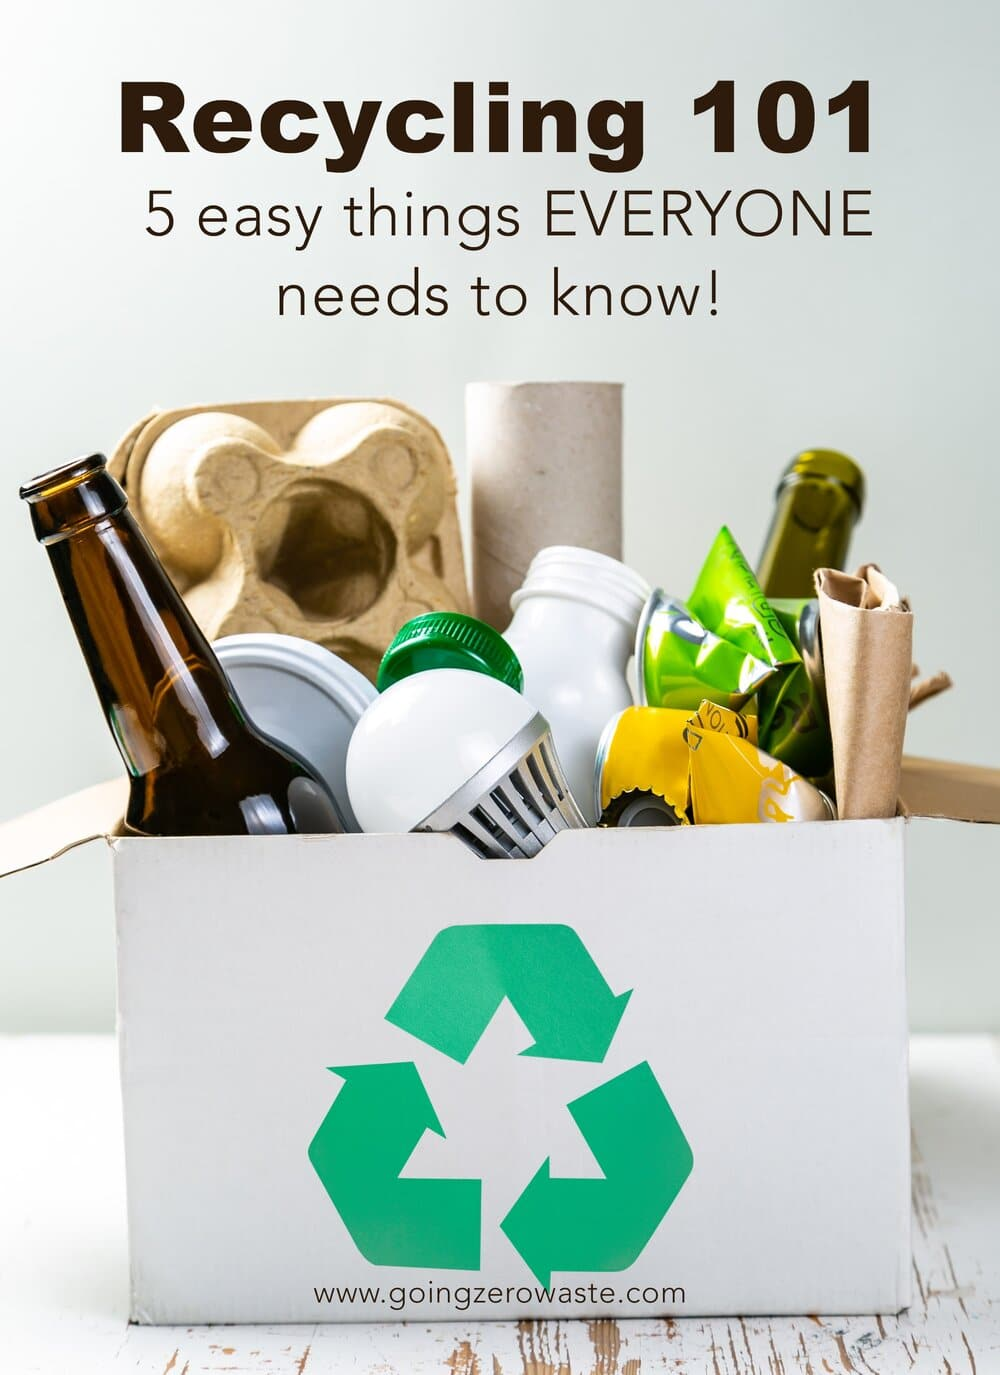 Box of Recyclables